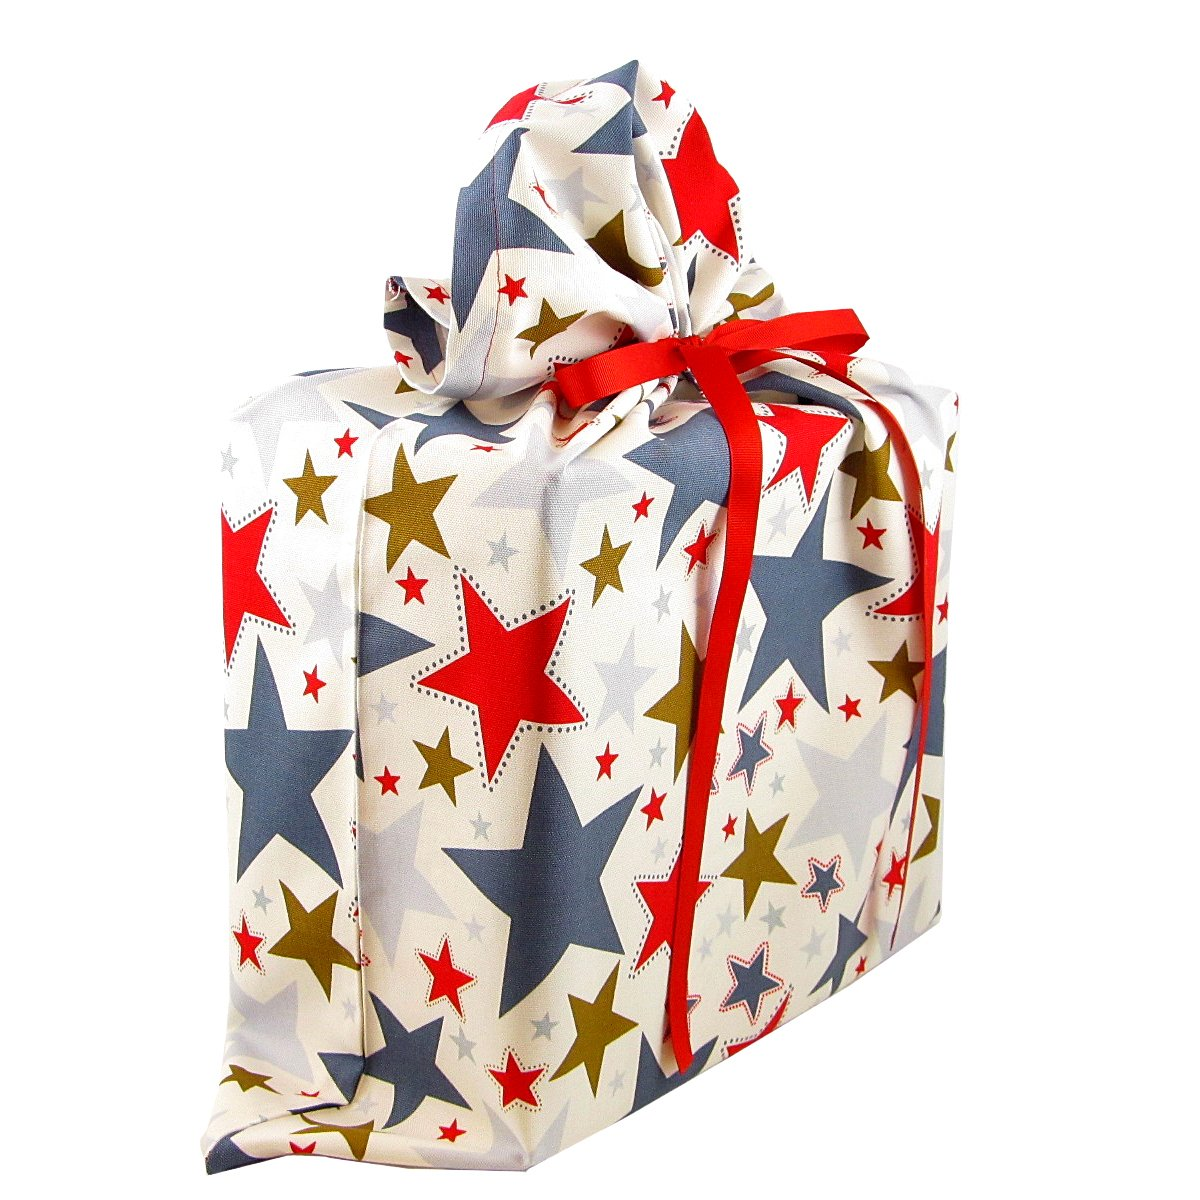 Stars II Reusable Fabric Gift Bag for Birthday, Graduation, or Any Occasion (Large 20 Inches Wide by 27 Inches High) by VZWraps (Image #2)